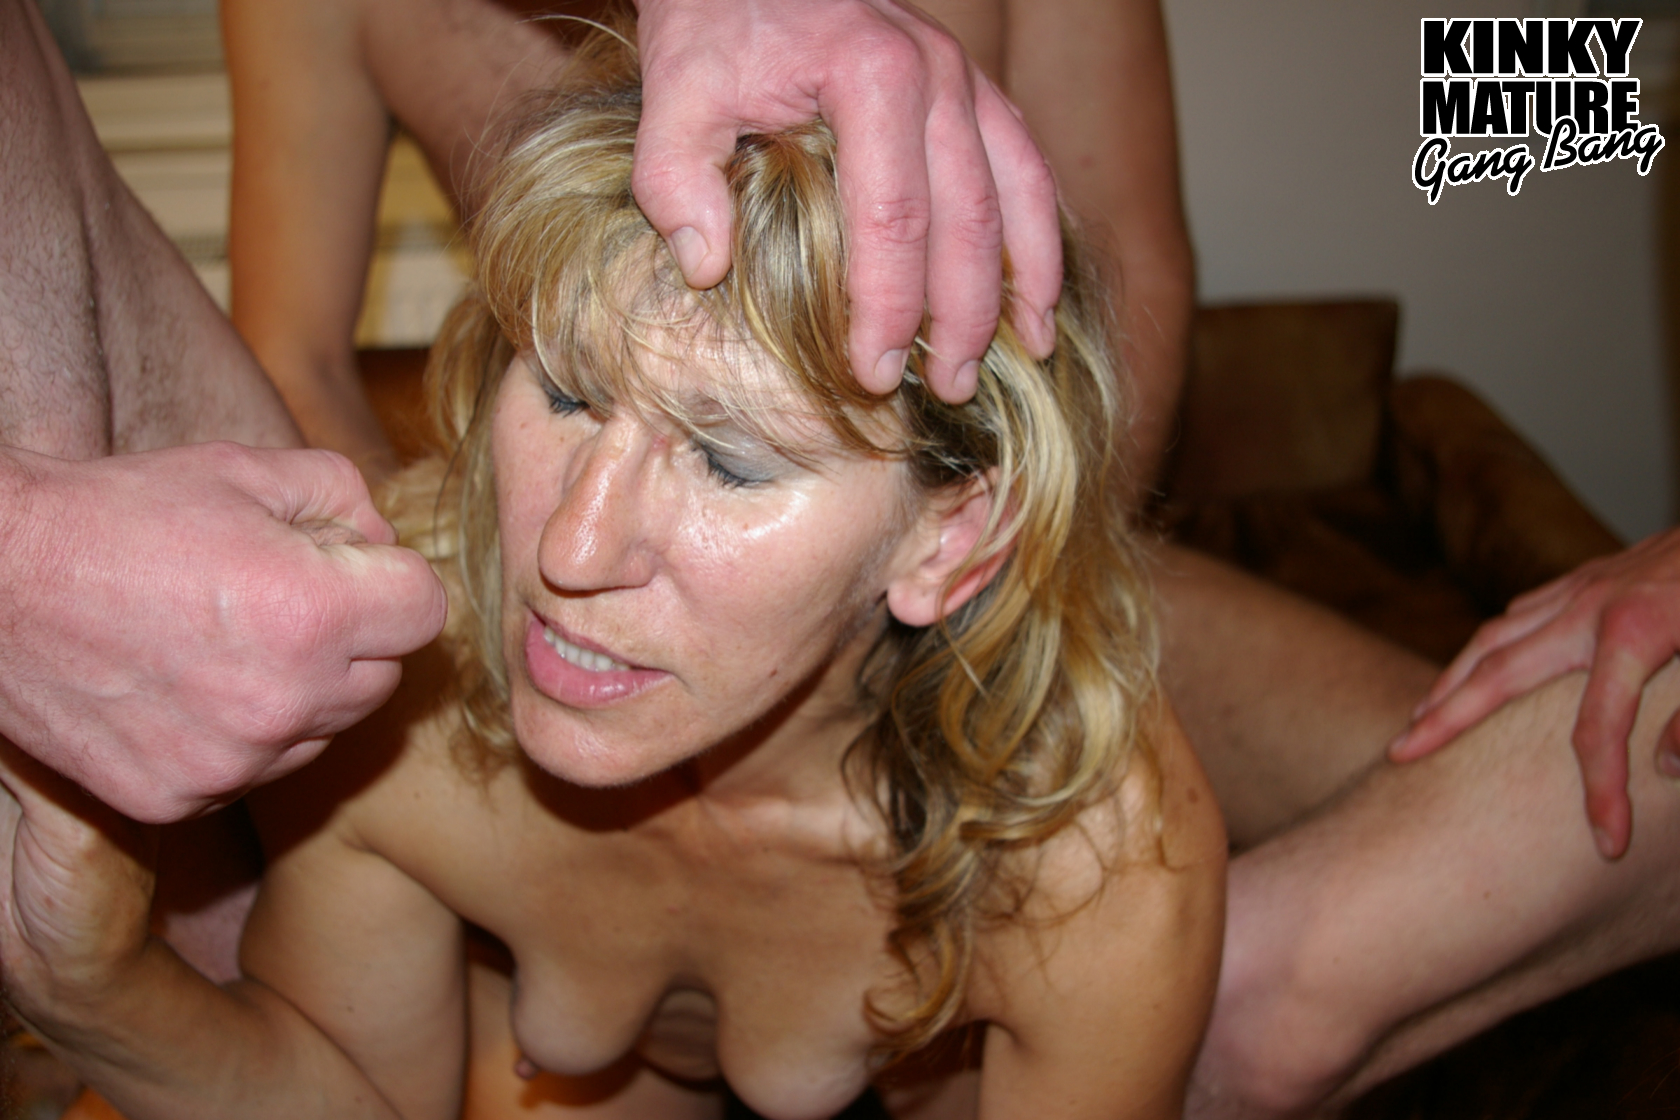 Have free granny gangbang videos for